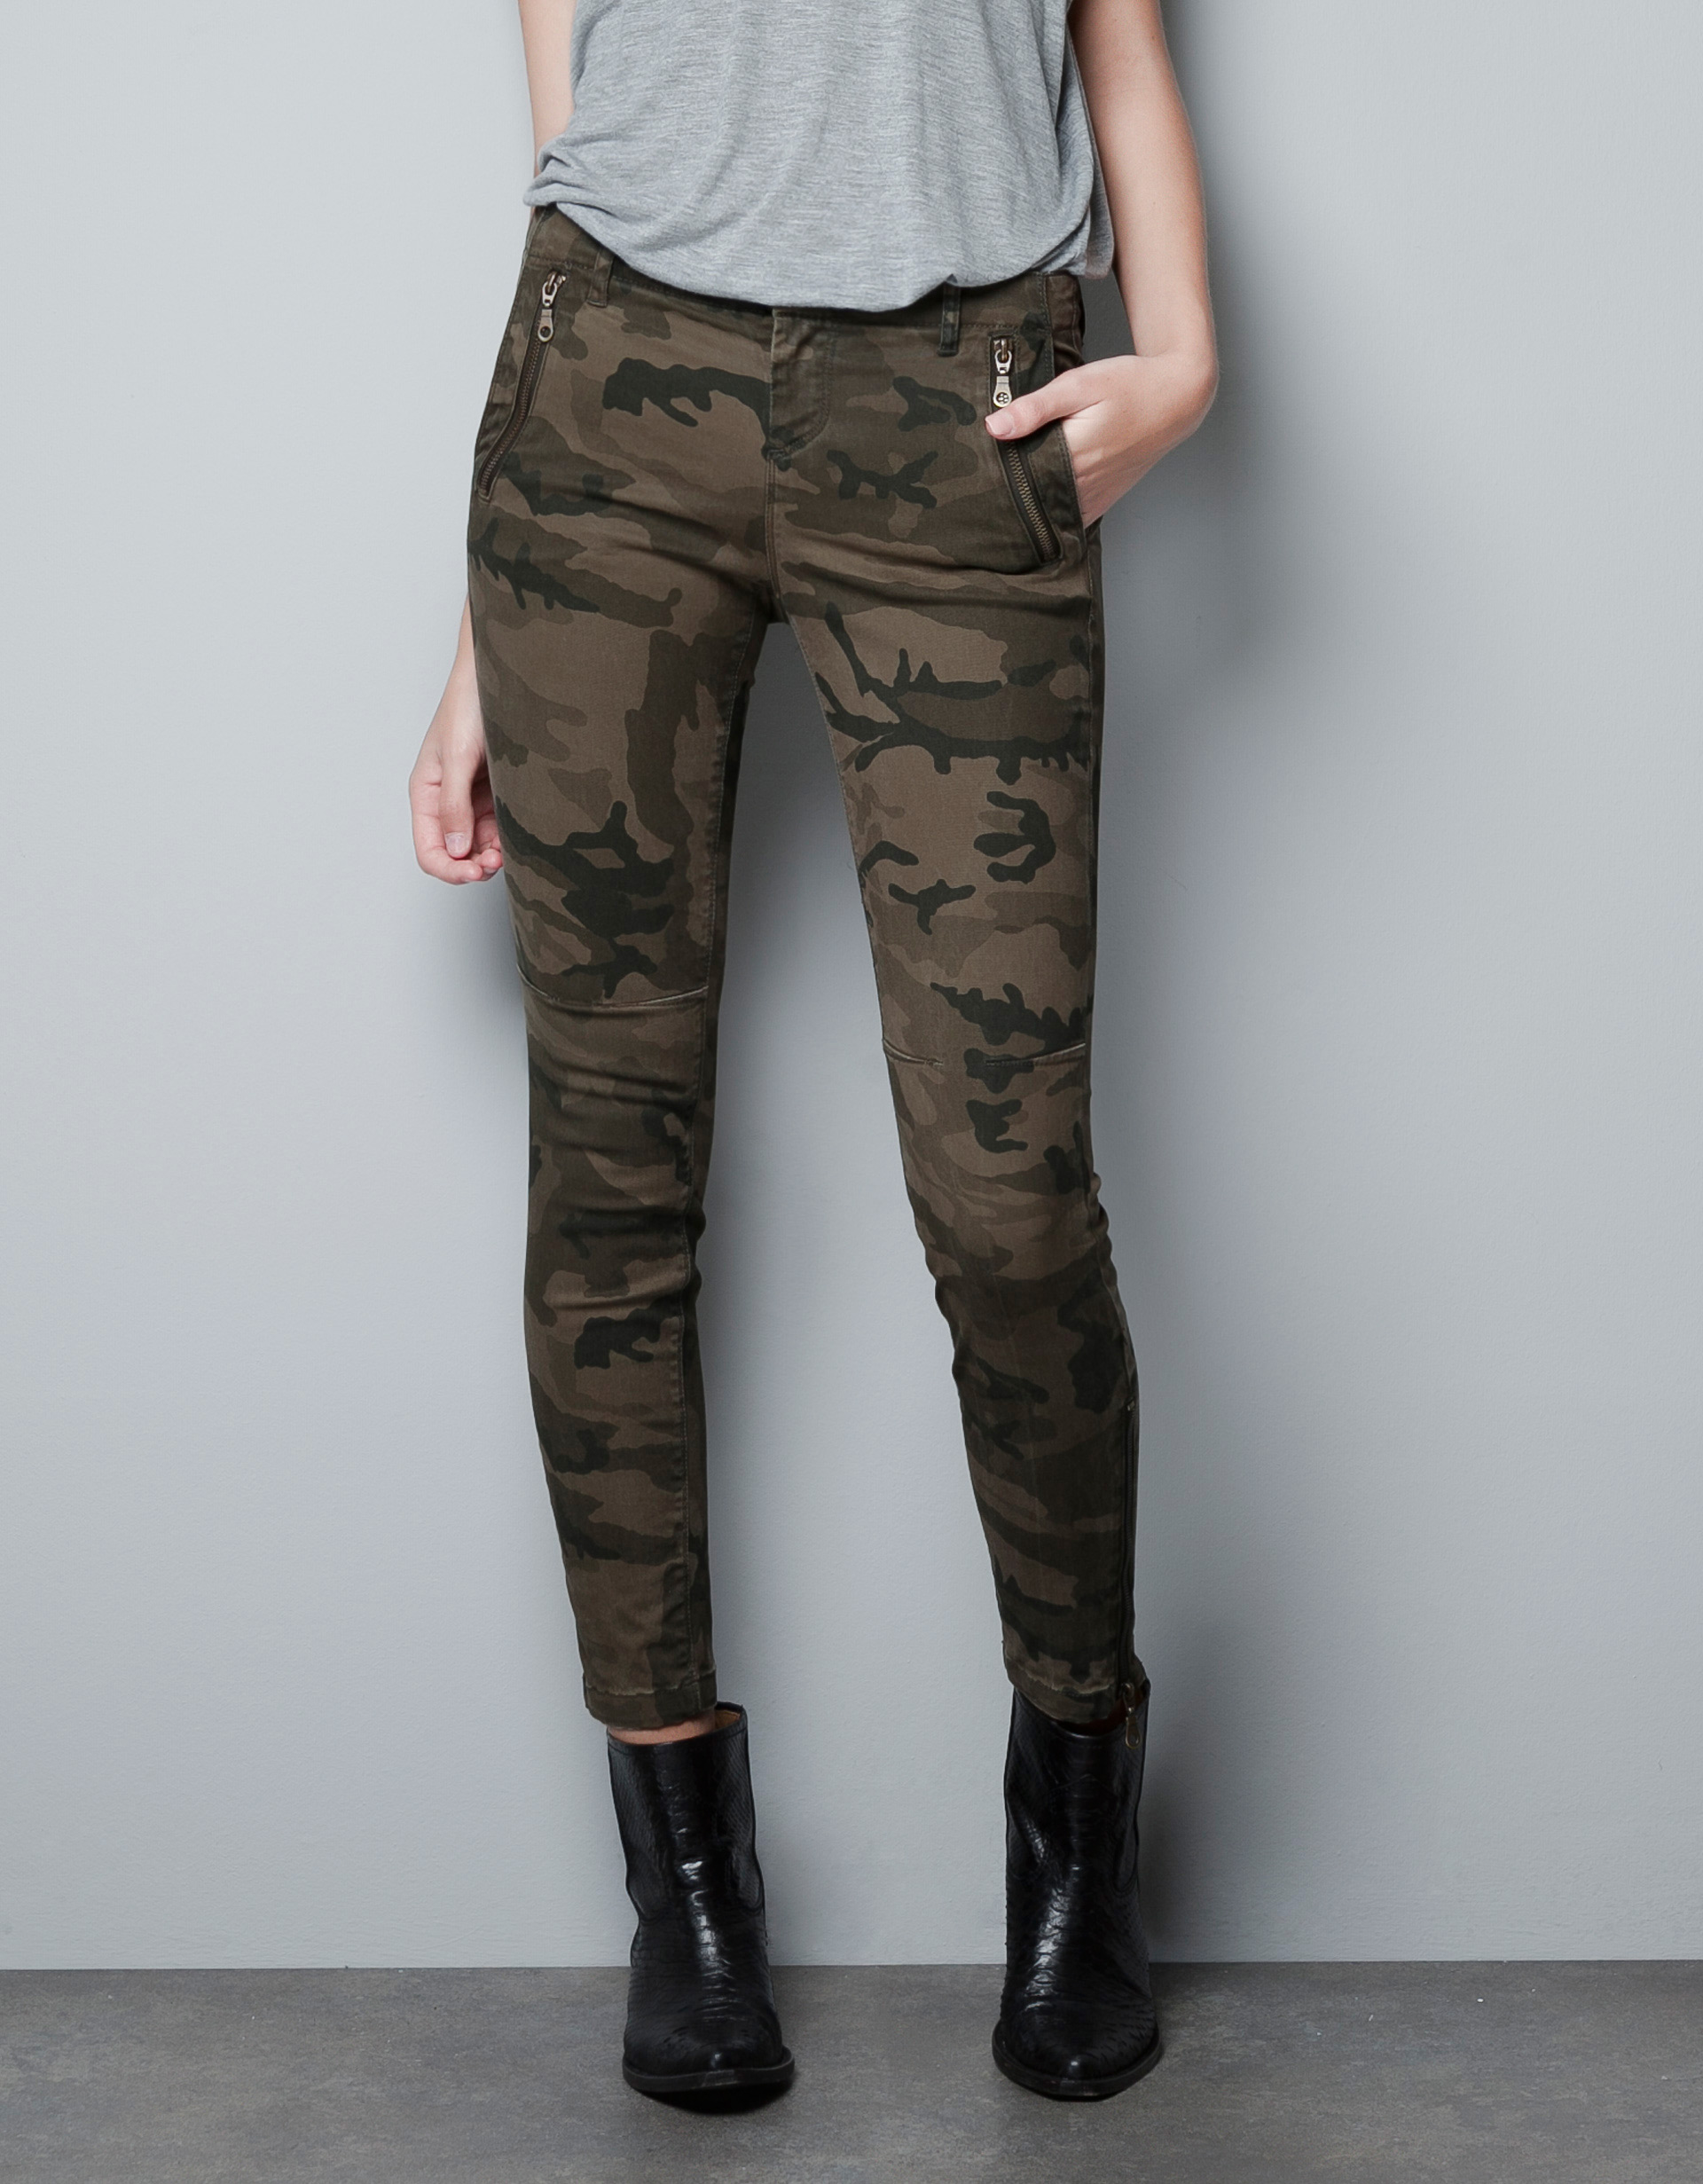 Excellent I Recently Got These Camo Pants From Zara And I Had No Idea I Was Going To Wear Them This Much Im Not Kidding Either I Have Worn Them At Least 3 Times In The Past Two Weeks! I Know When Most People Think Of Camouflage They Think Of The